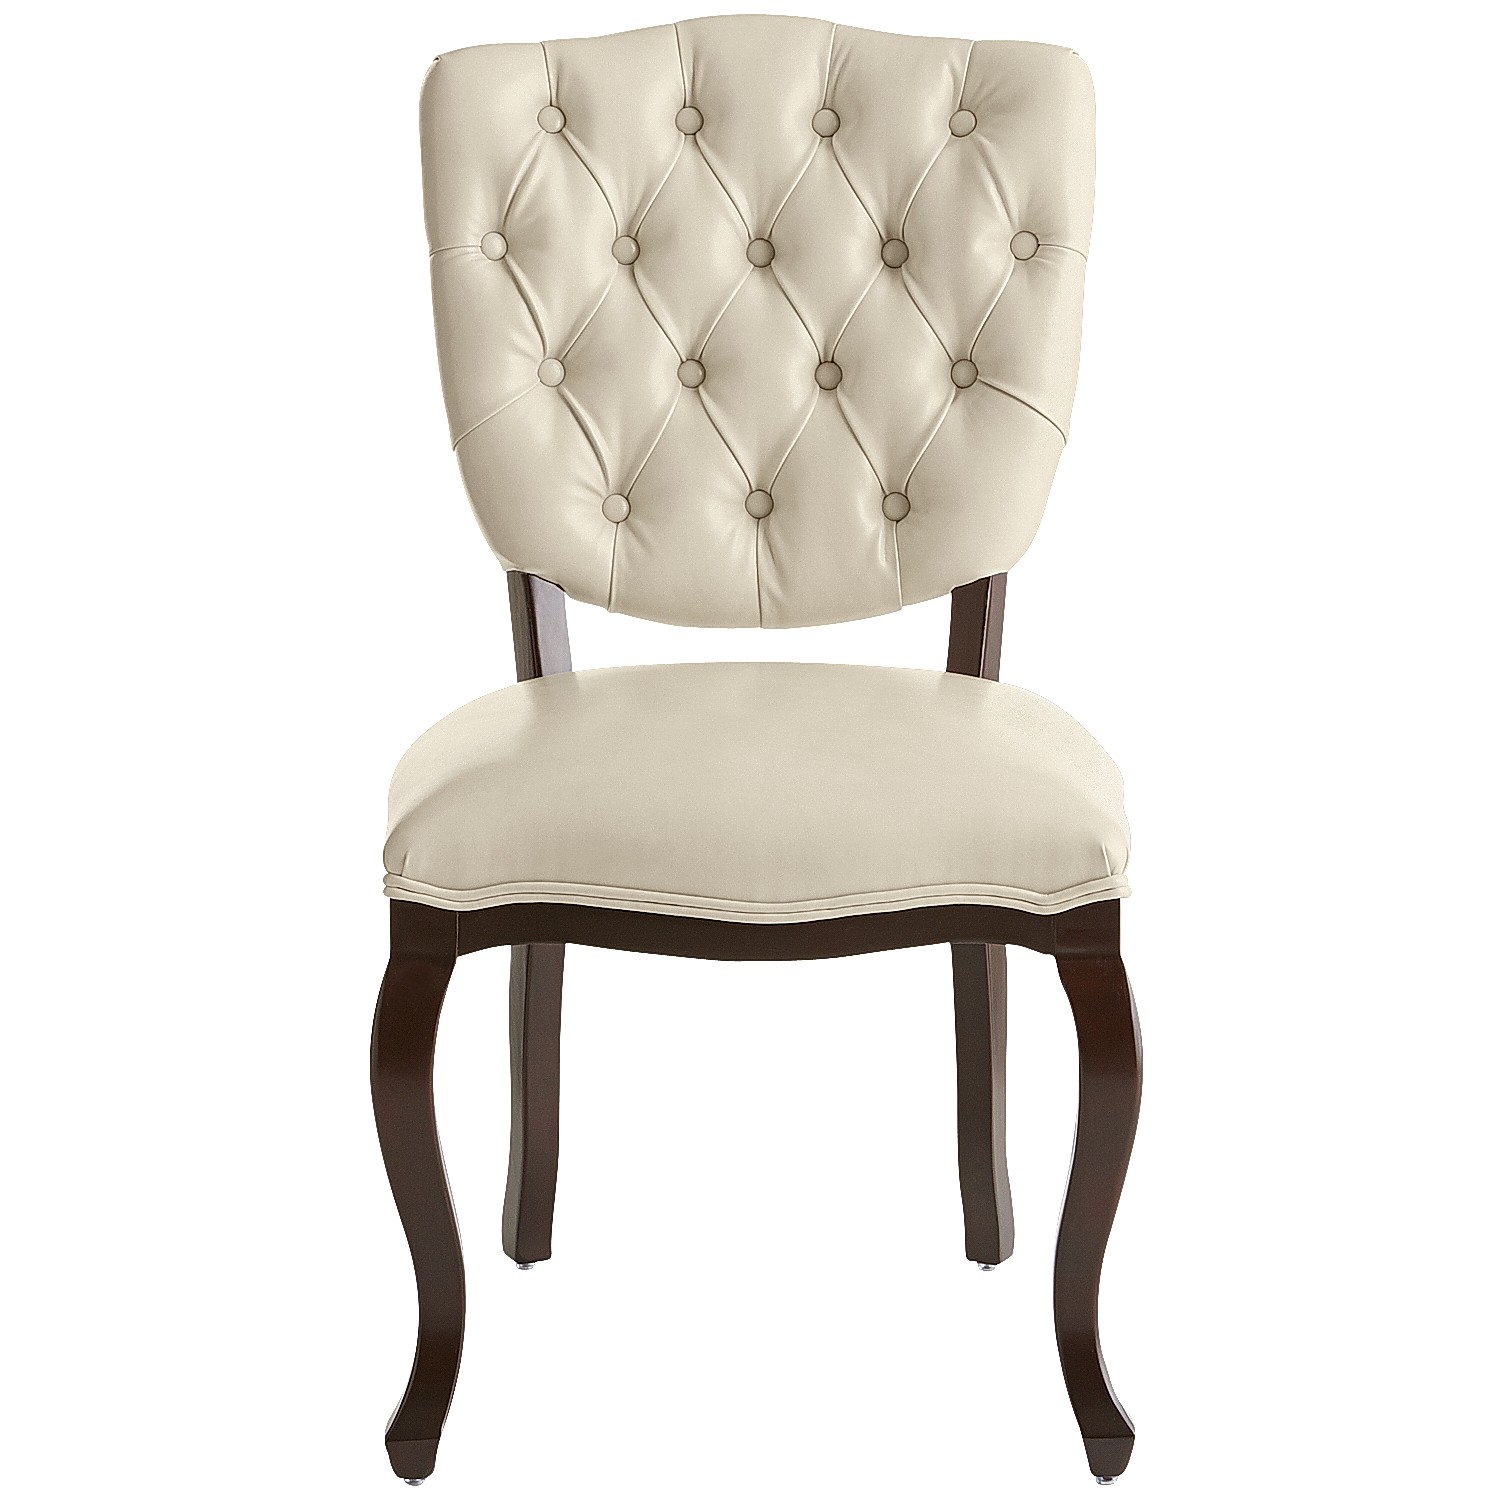 variation thumbnail of Westyn Dining Chair - Ivory